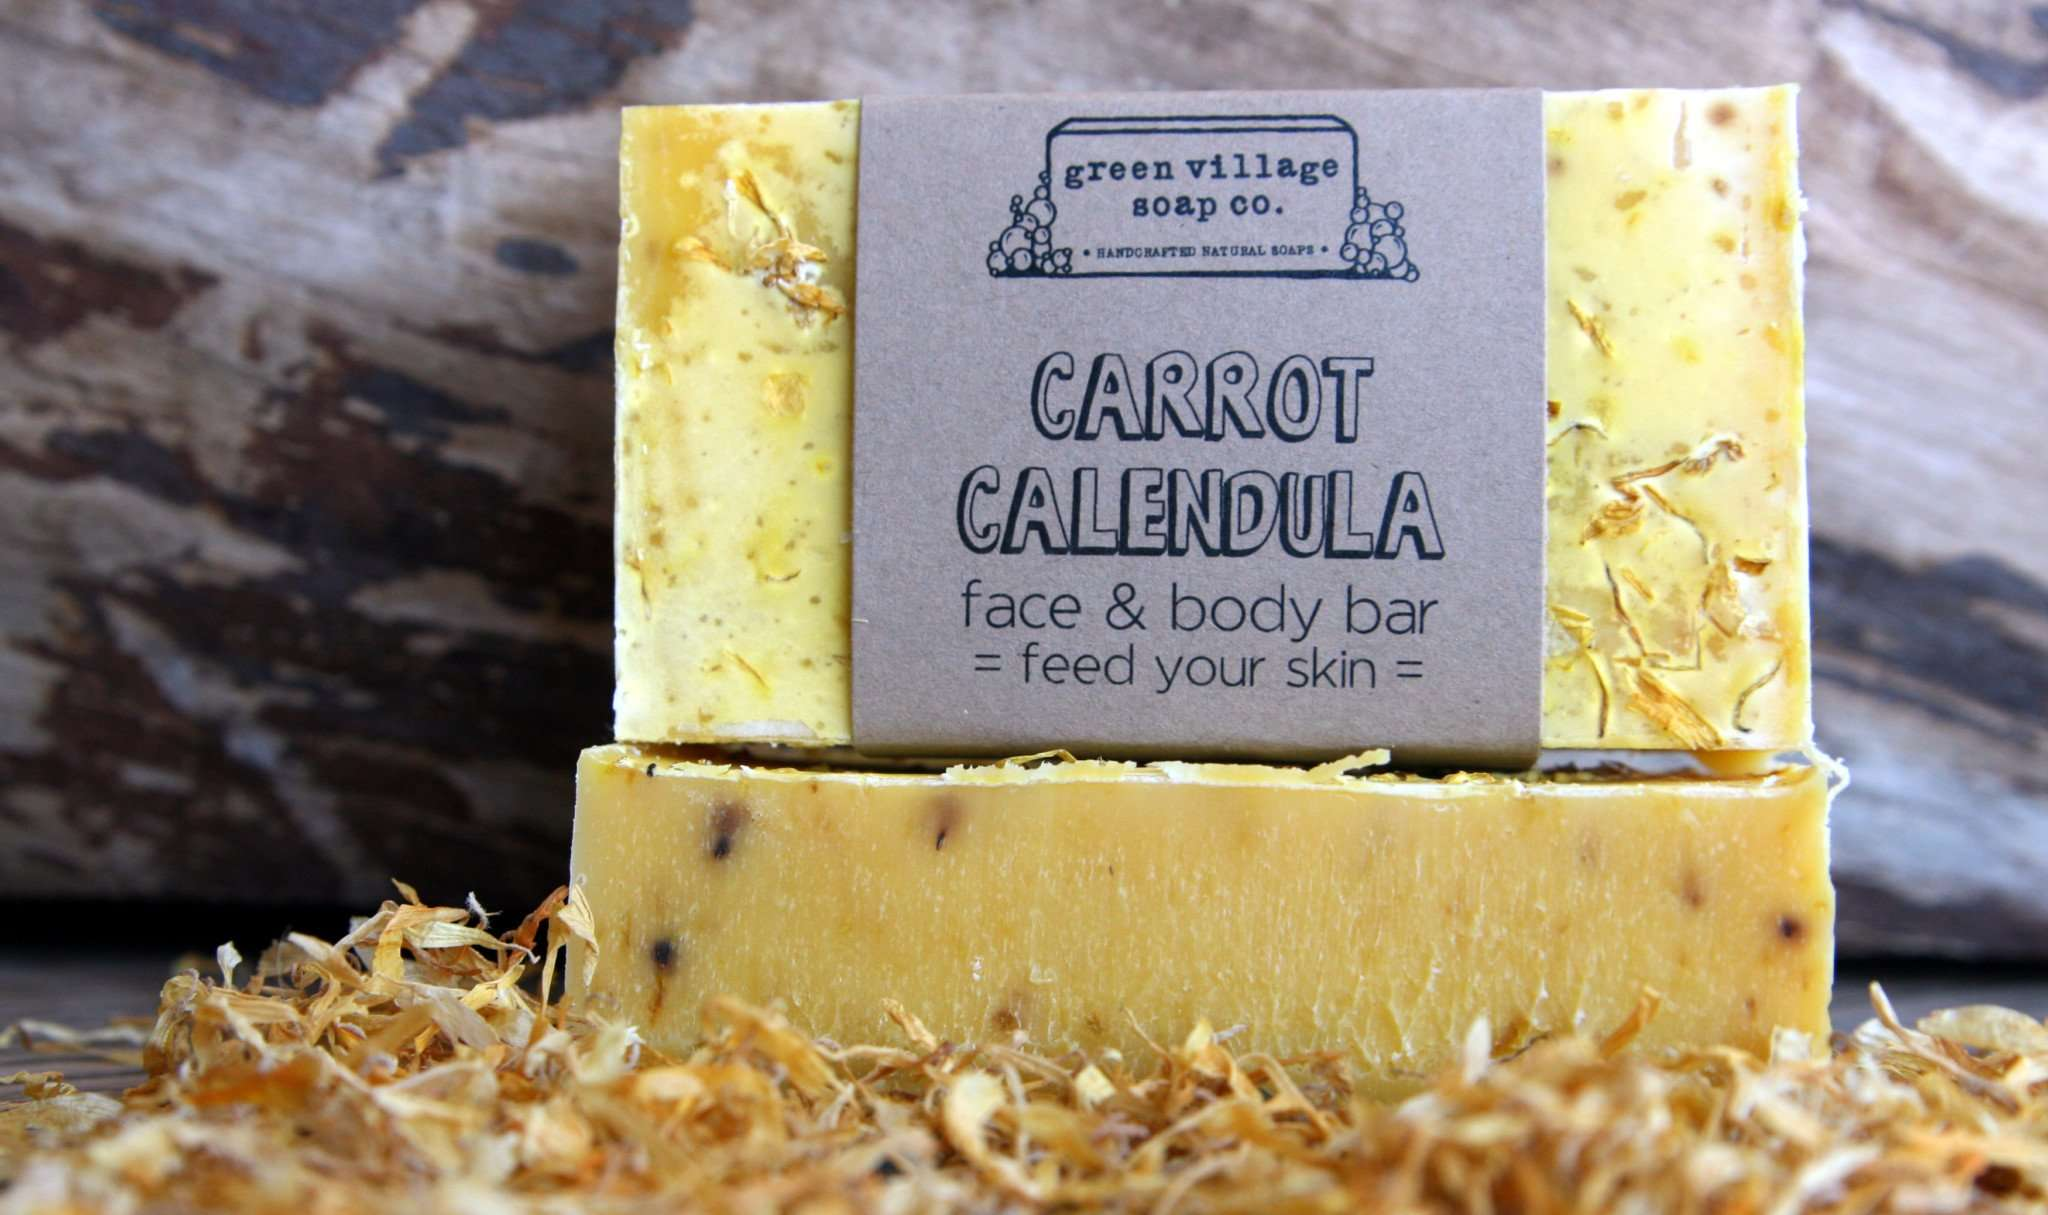 Green Village Soap Carrot Calendula soap